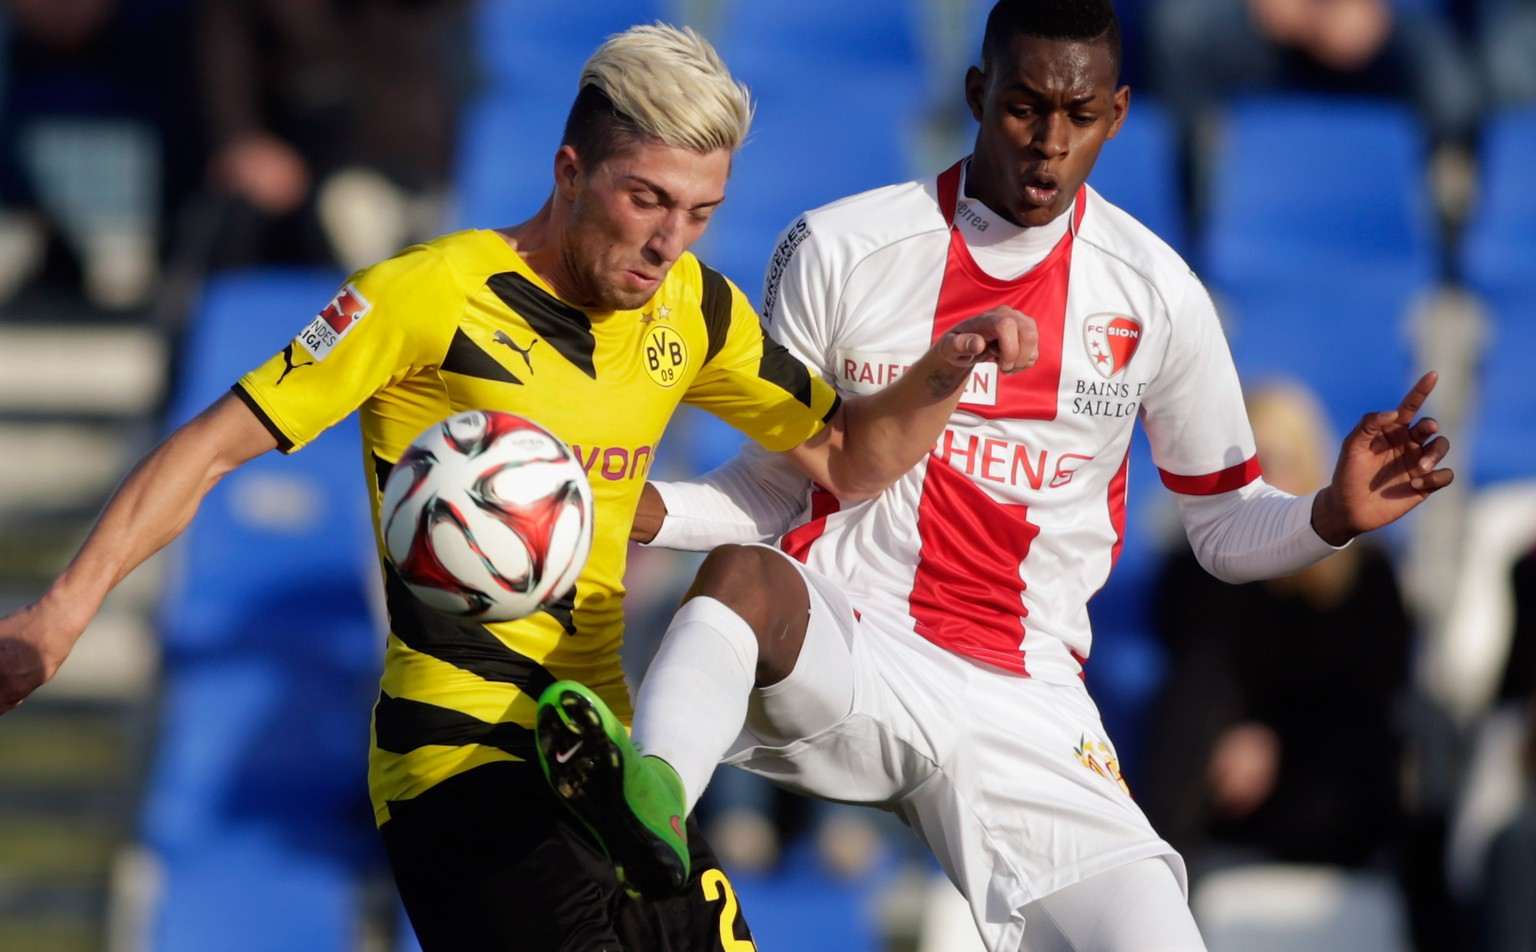 LA MANGA, SPAIN - JANUARY 13:  Kevin Kampl (L) of Dortmund and Edimilson Fernandes of Sion fight for the ball during a friendly match between Borussia Dortmund and FC Sion during day 4 of Borussia Dortmund training camp on January 13, 2015 in La Manga, Spain.  (Photo by Johannes Simon/Bongarts/Getty Images)